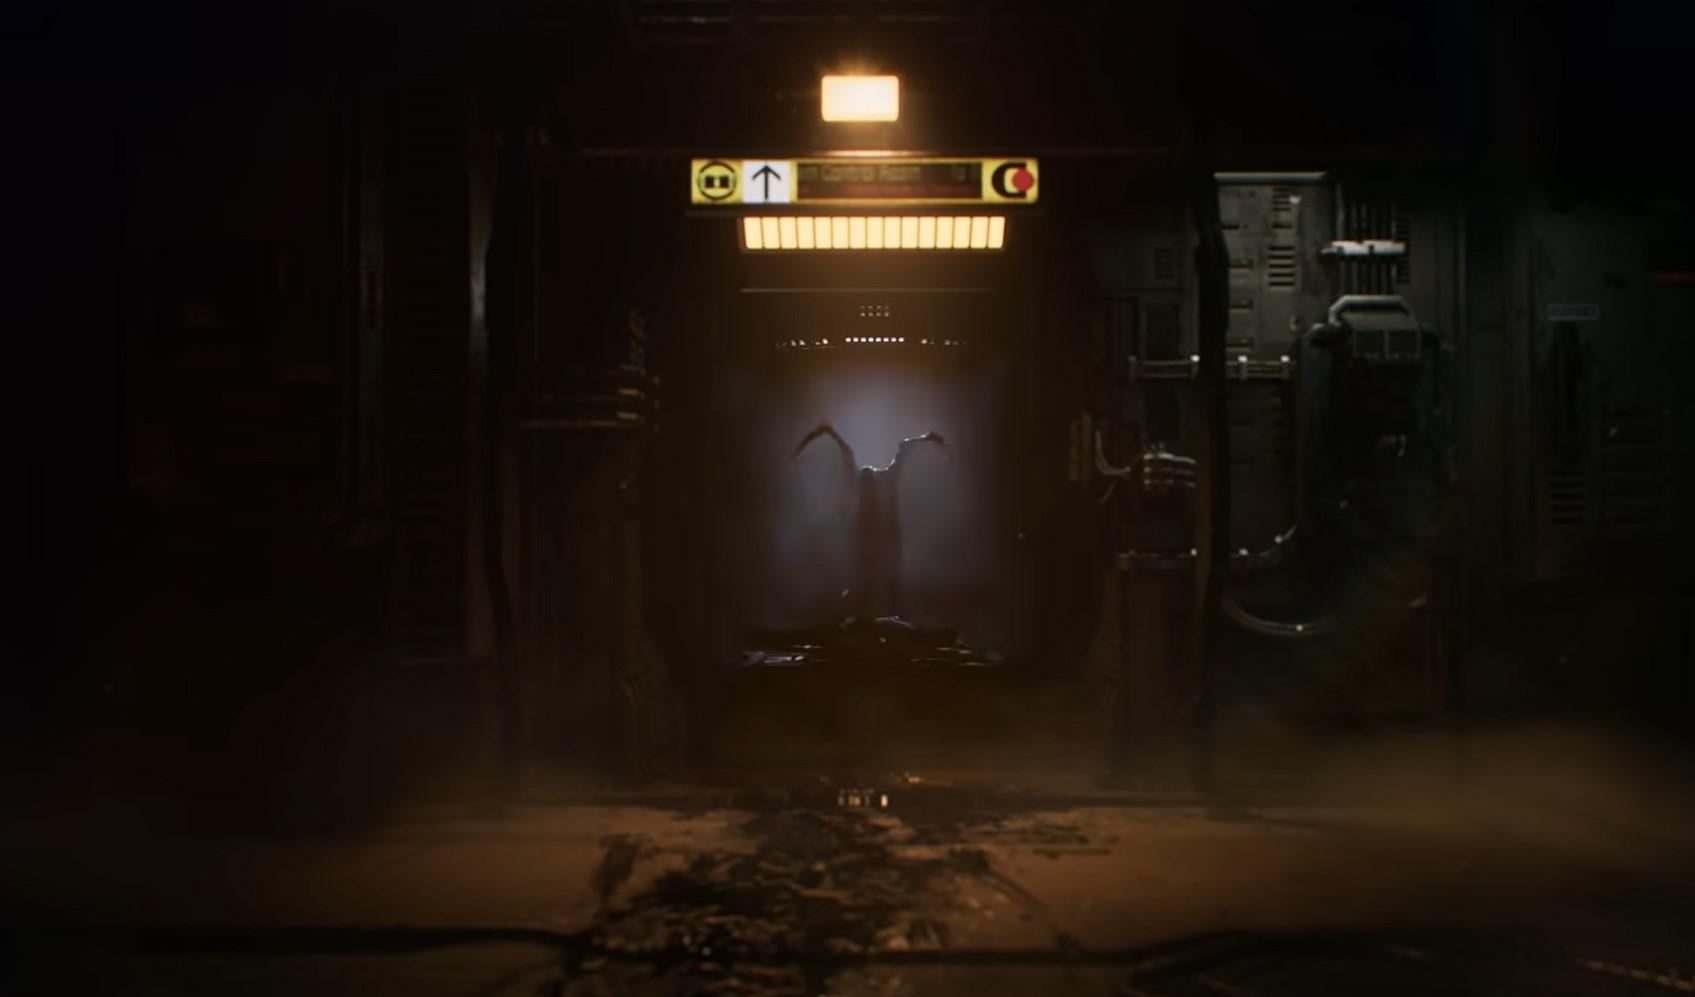 Relive the nightmare aboard the USG Ishimura in the Dead Space remake